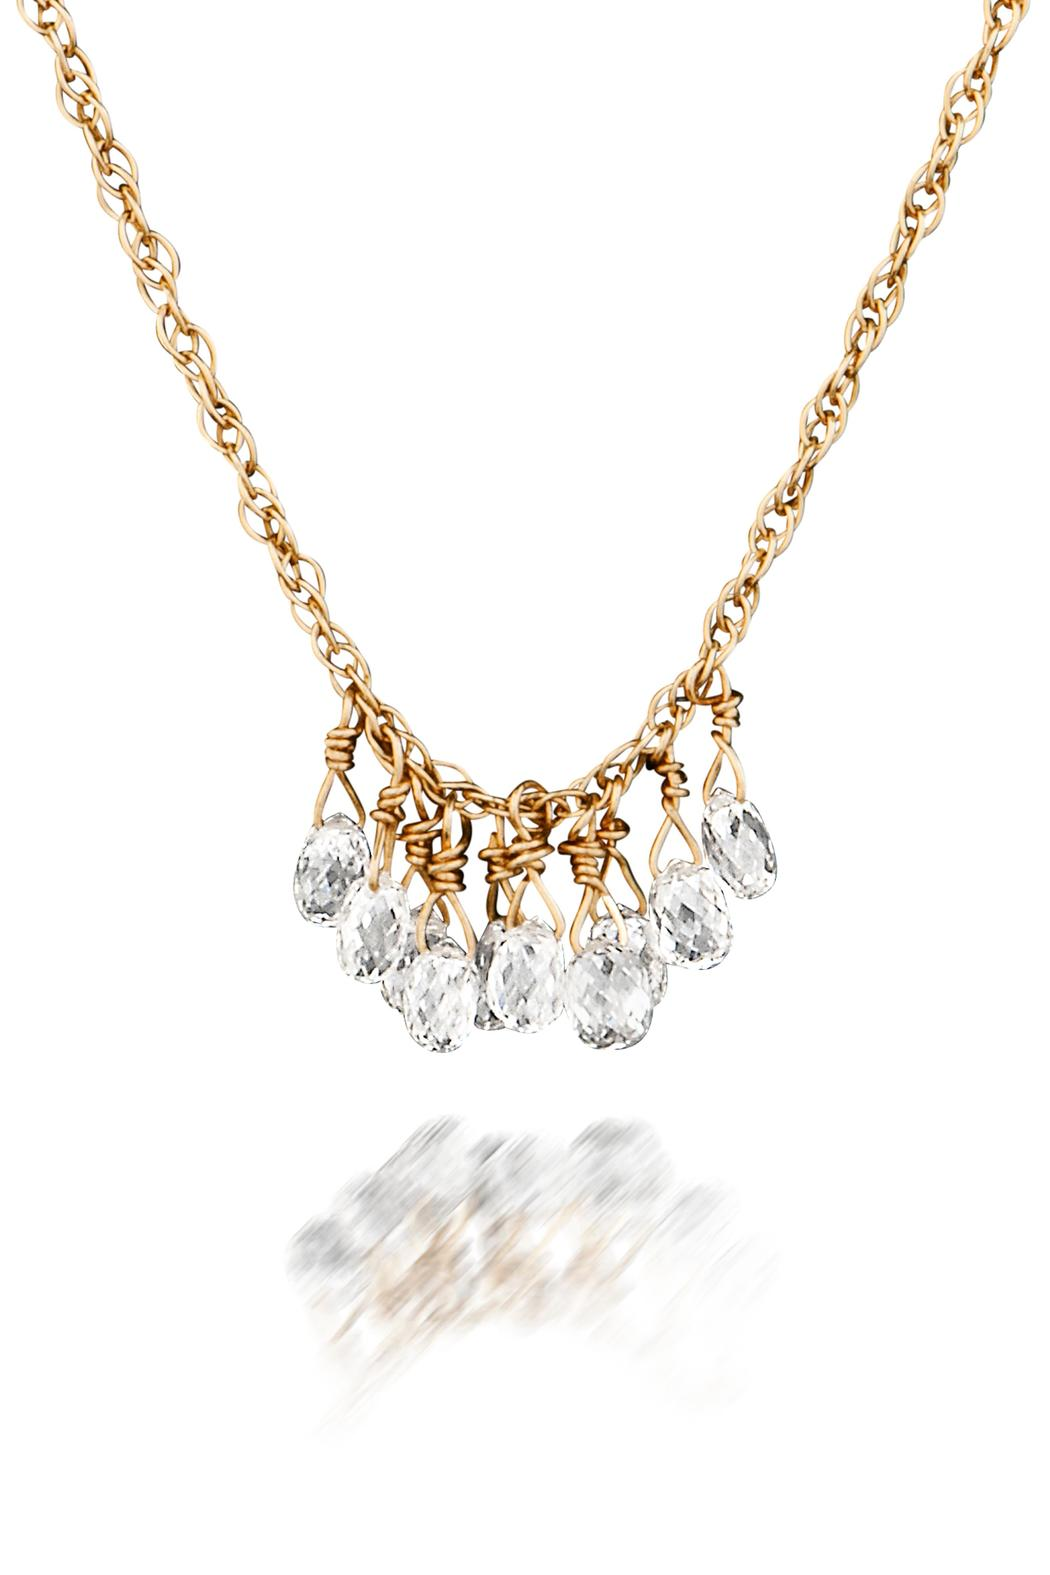 briolette quercus lr necklace briomd raleigh n necklaces single diamond